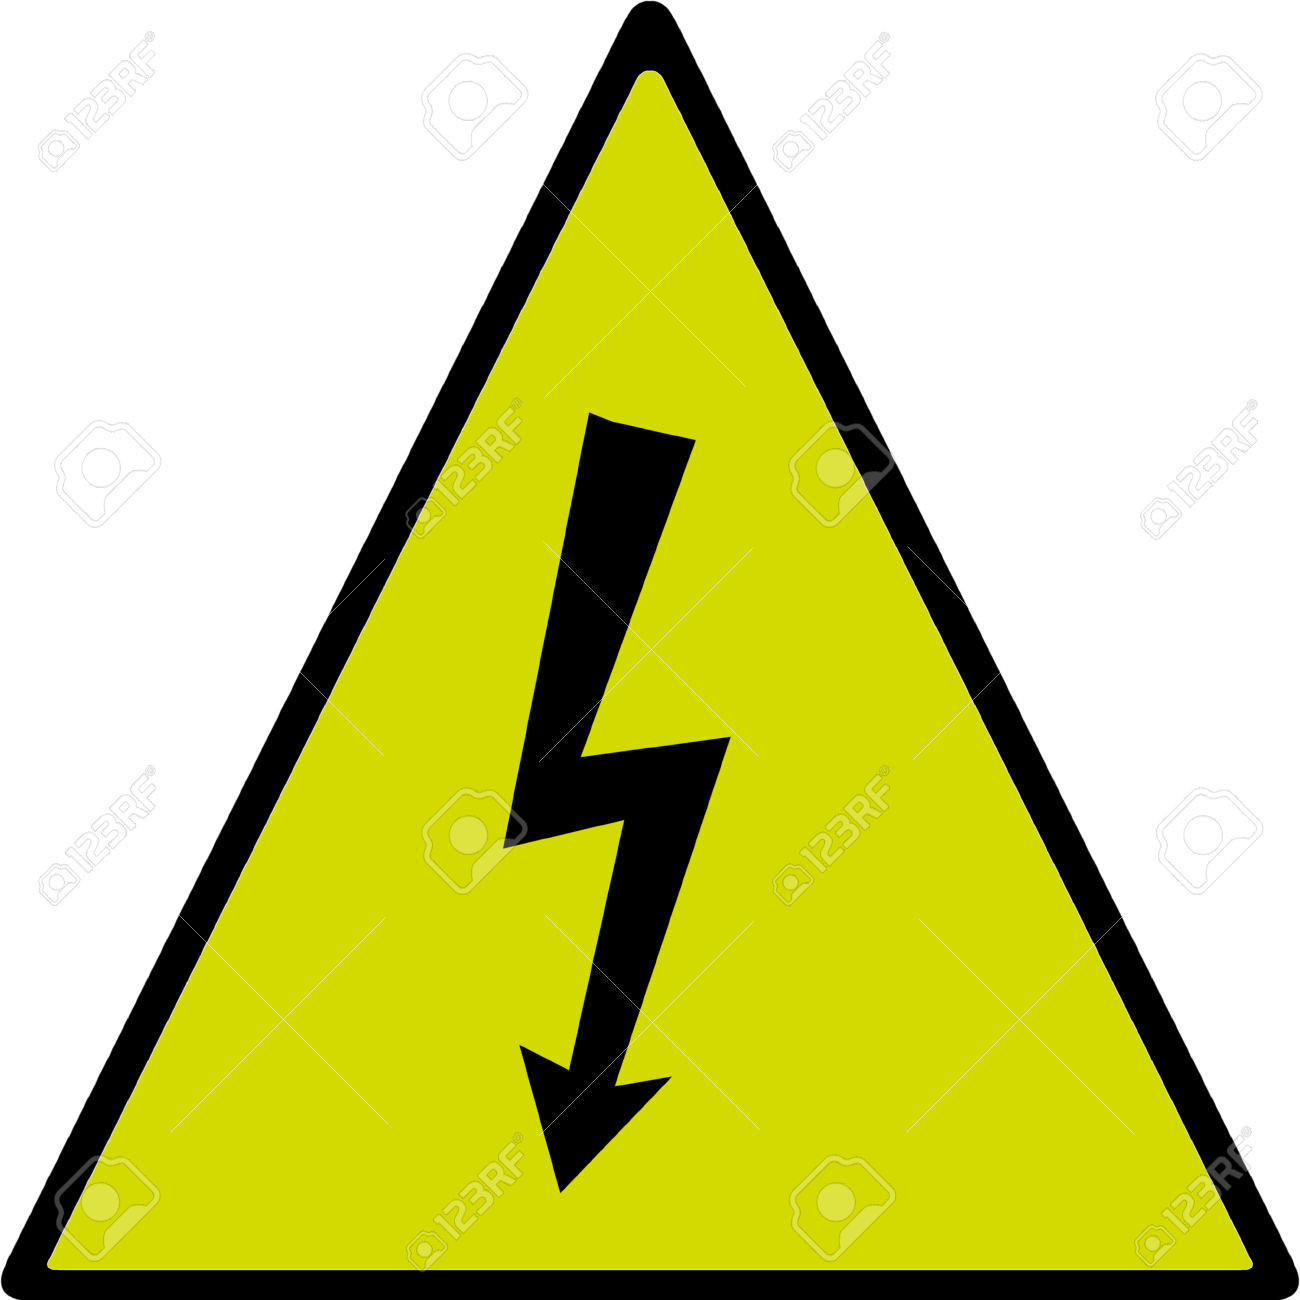 Clipart electric shock.